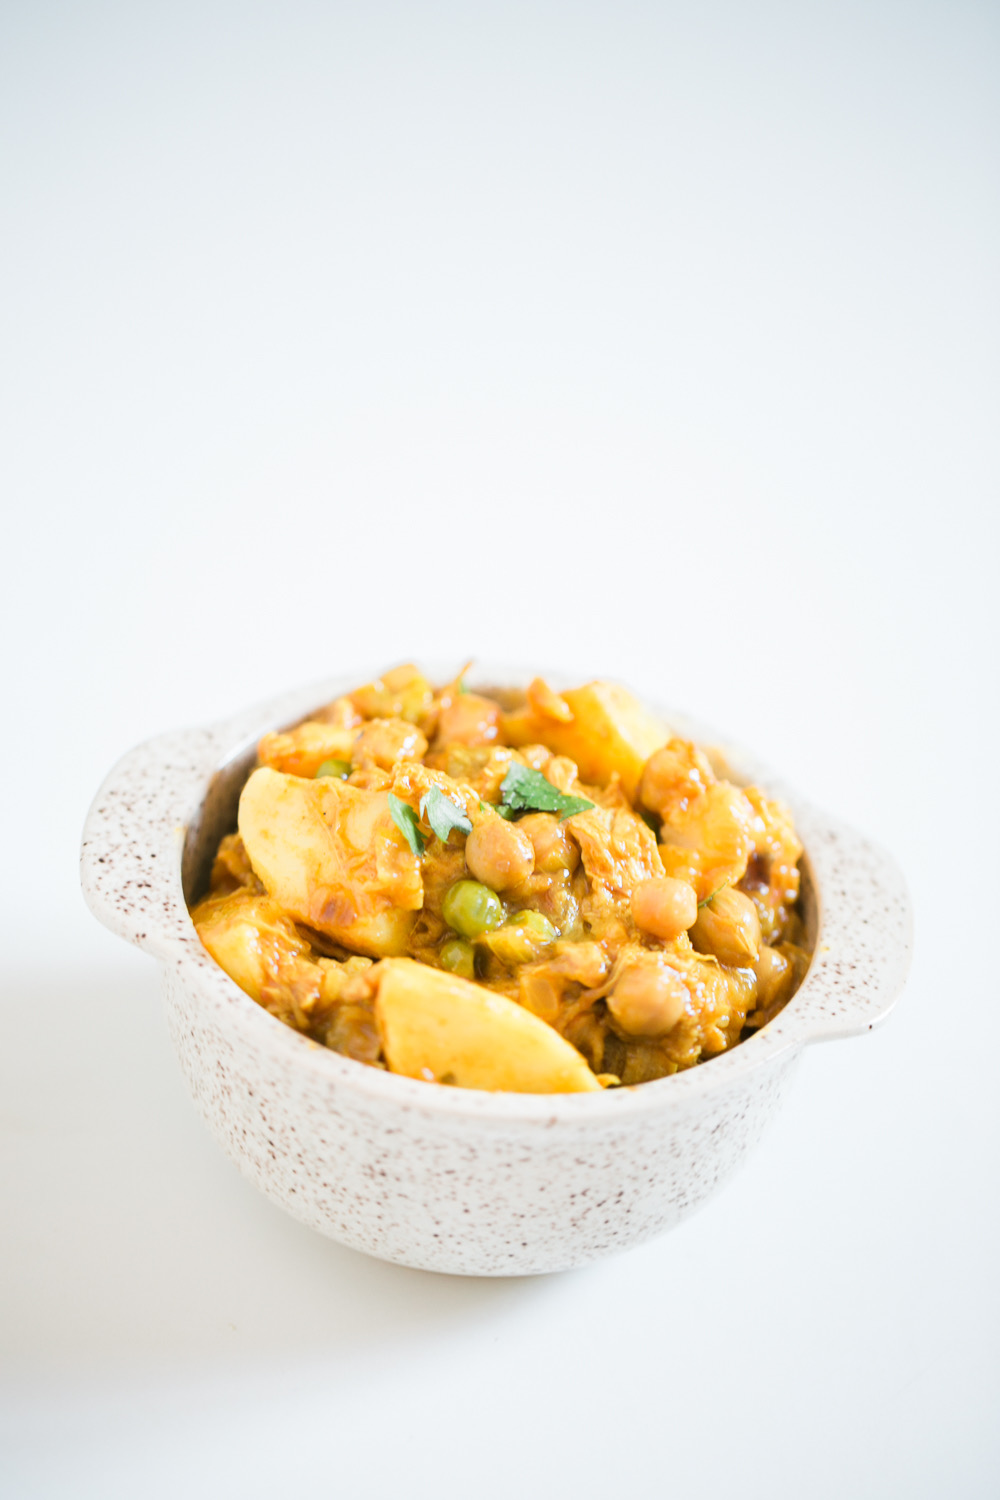 Cape malay vegan chicken curry